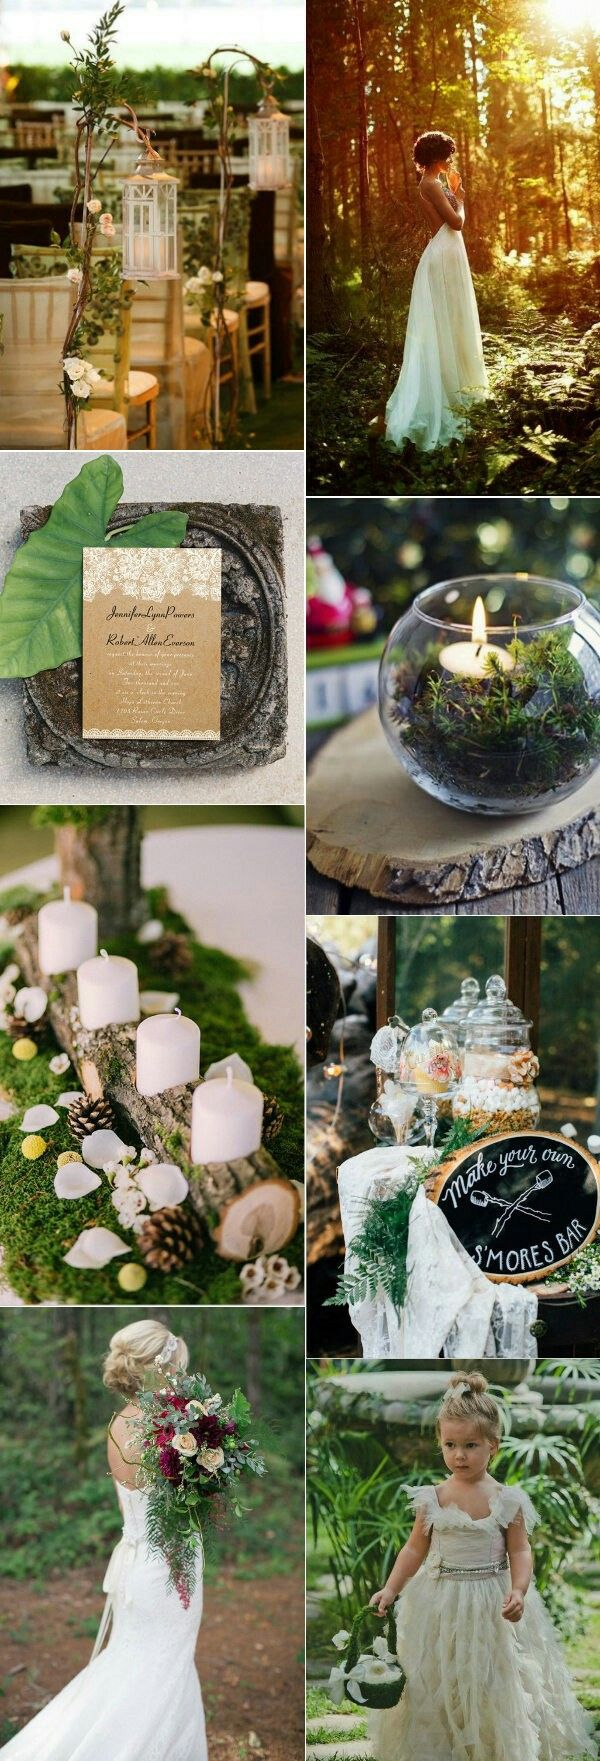 Wedding decorations theme october 2018 Pin by Jessica Stroud on October  board  Pinterest  Wedding